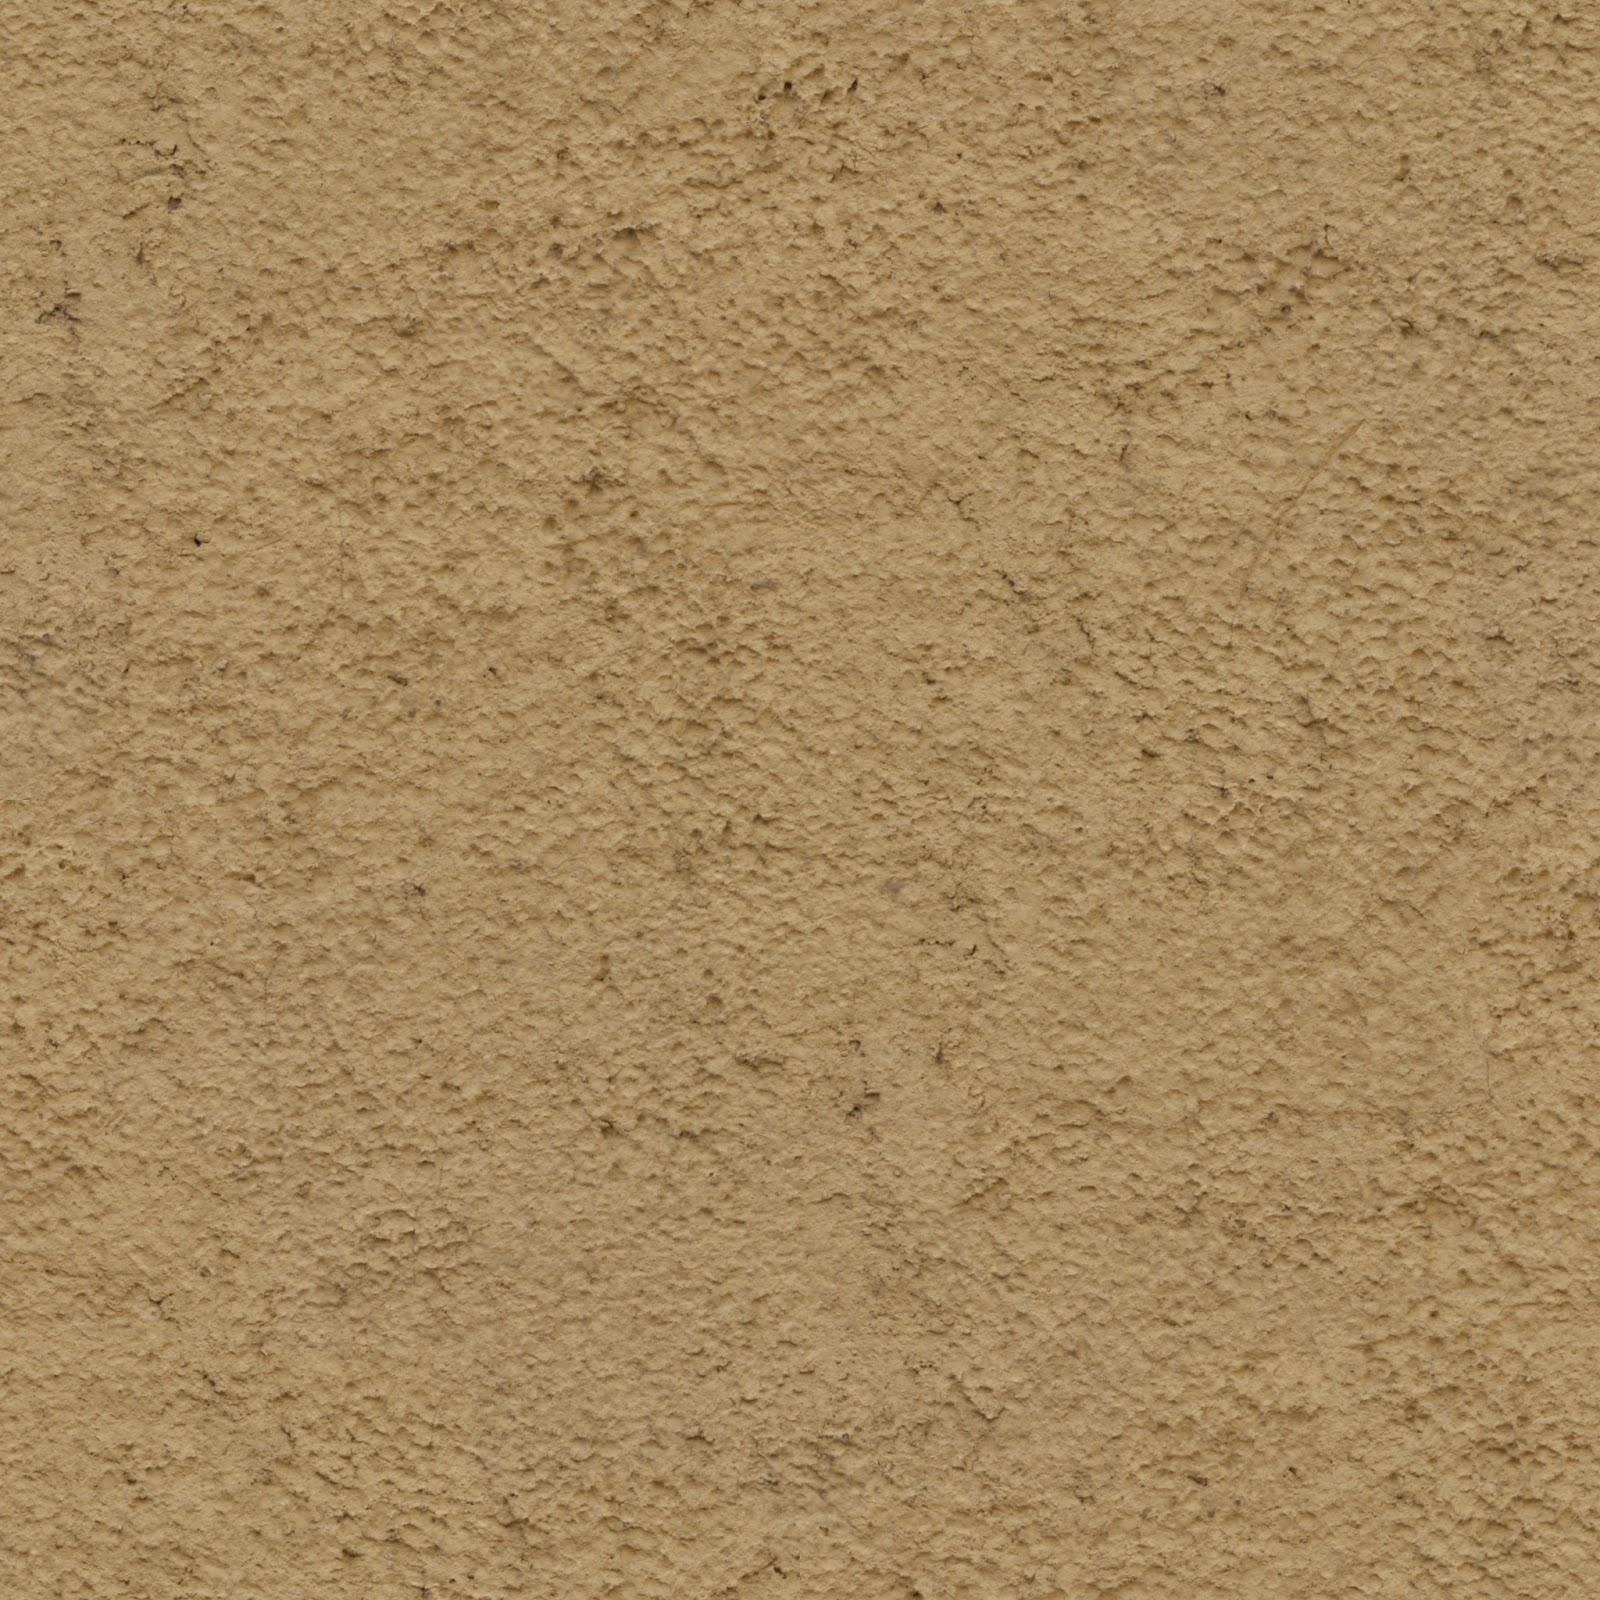 Stucco dirty rough stucco plaster wall paper seamless texture 7